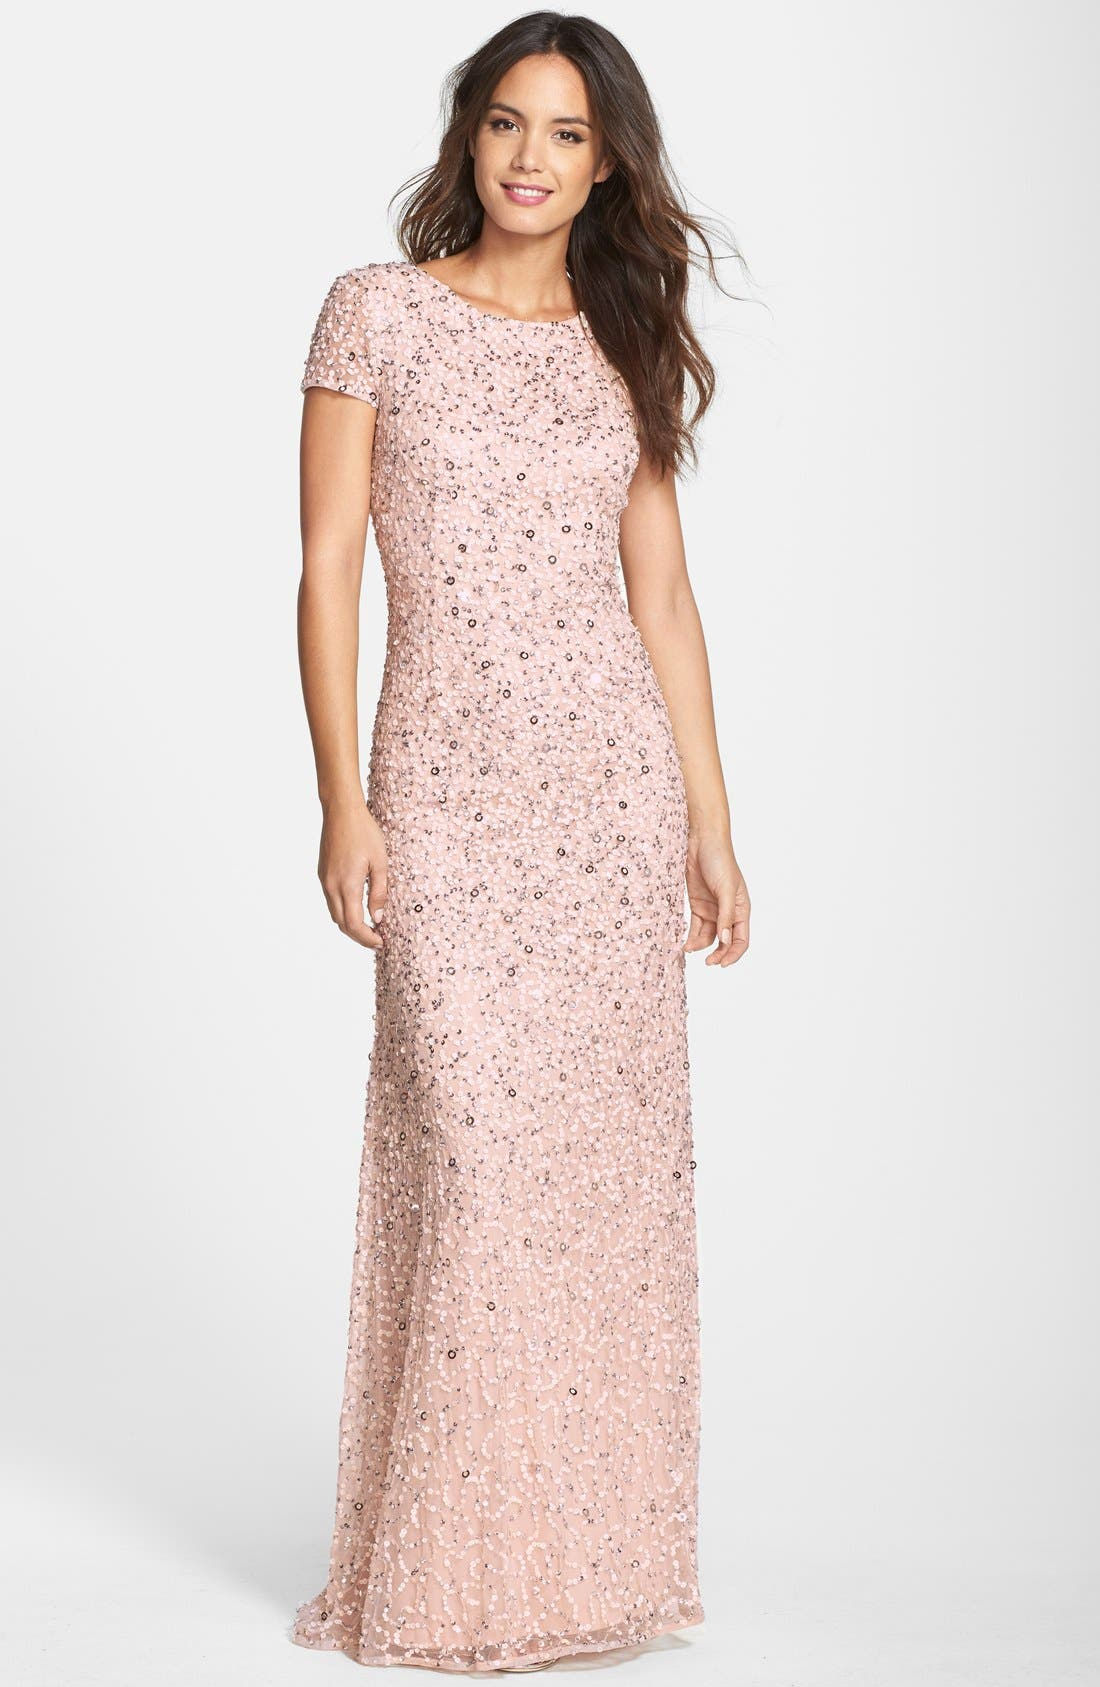 Mother-of-the-Bride Dresses: Pleated, Lace & More   Nordstrom